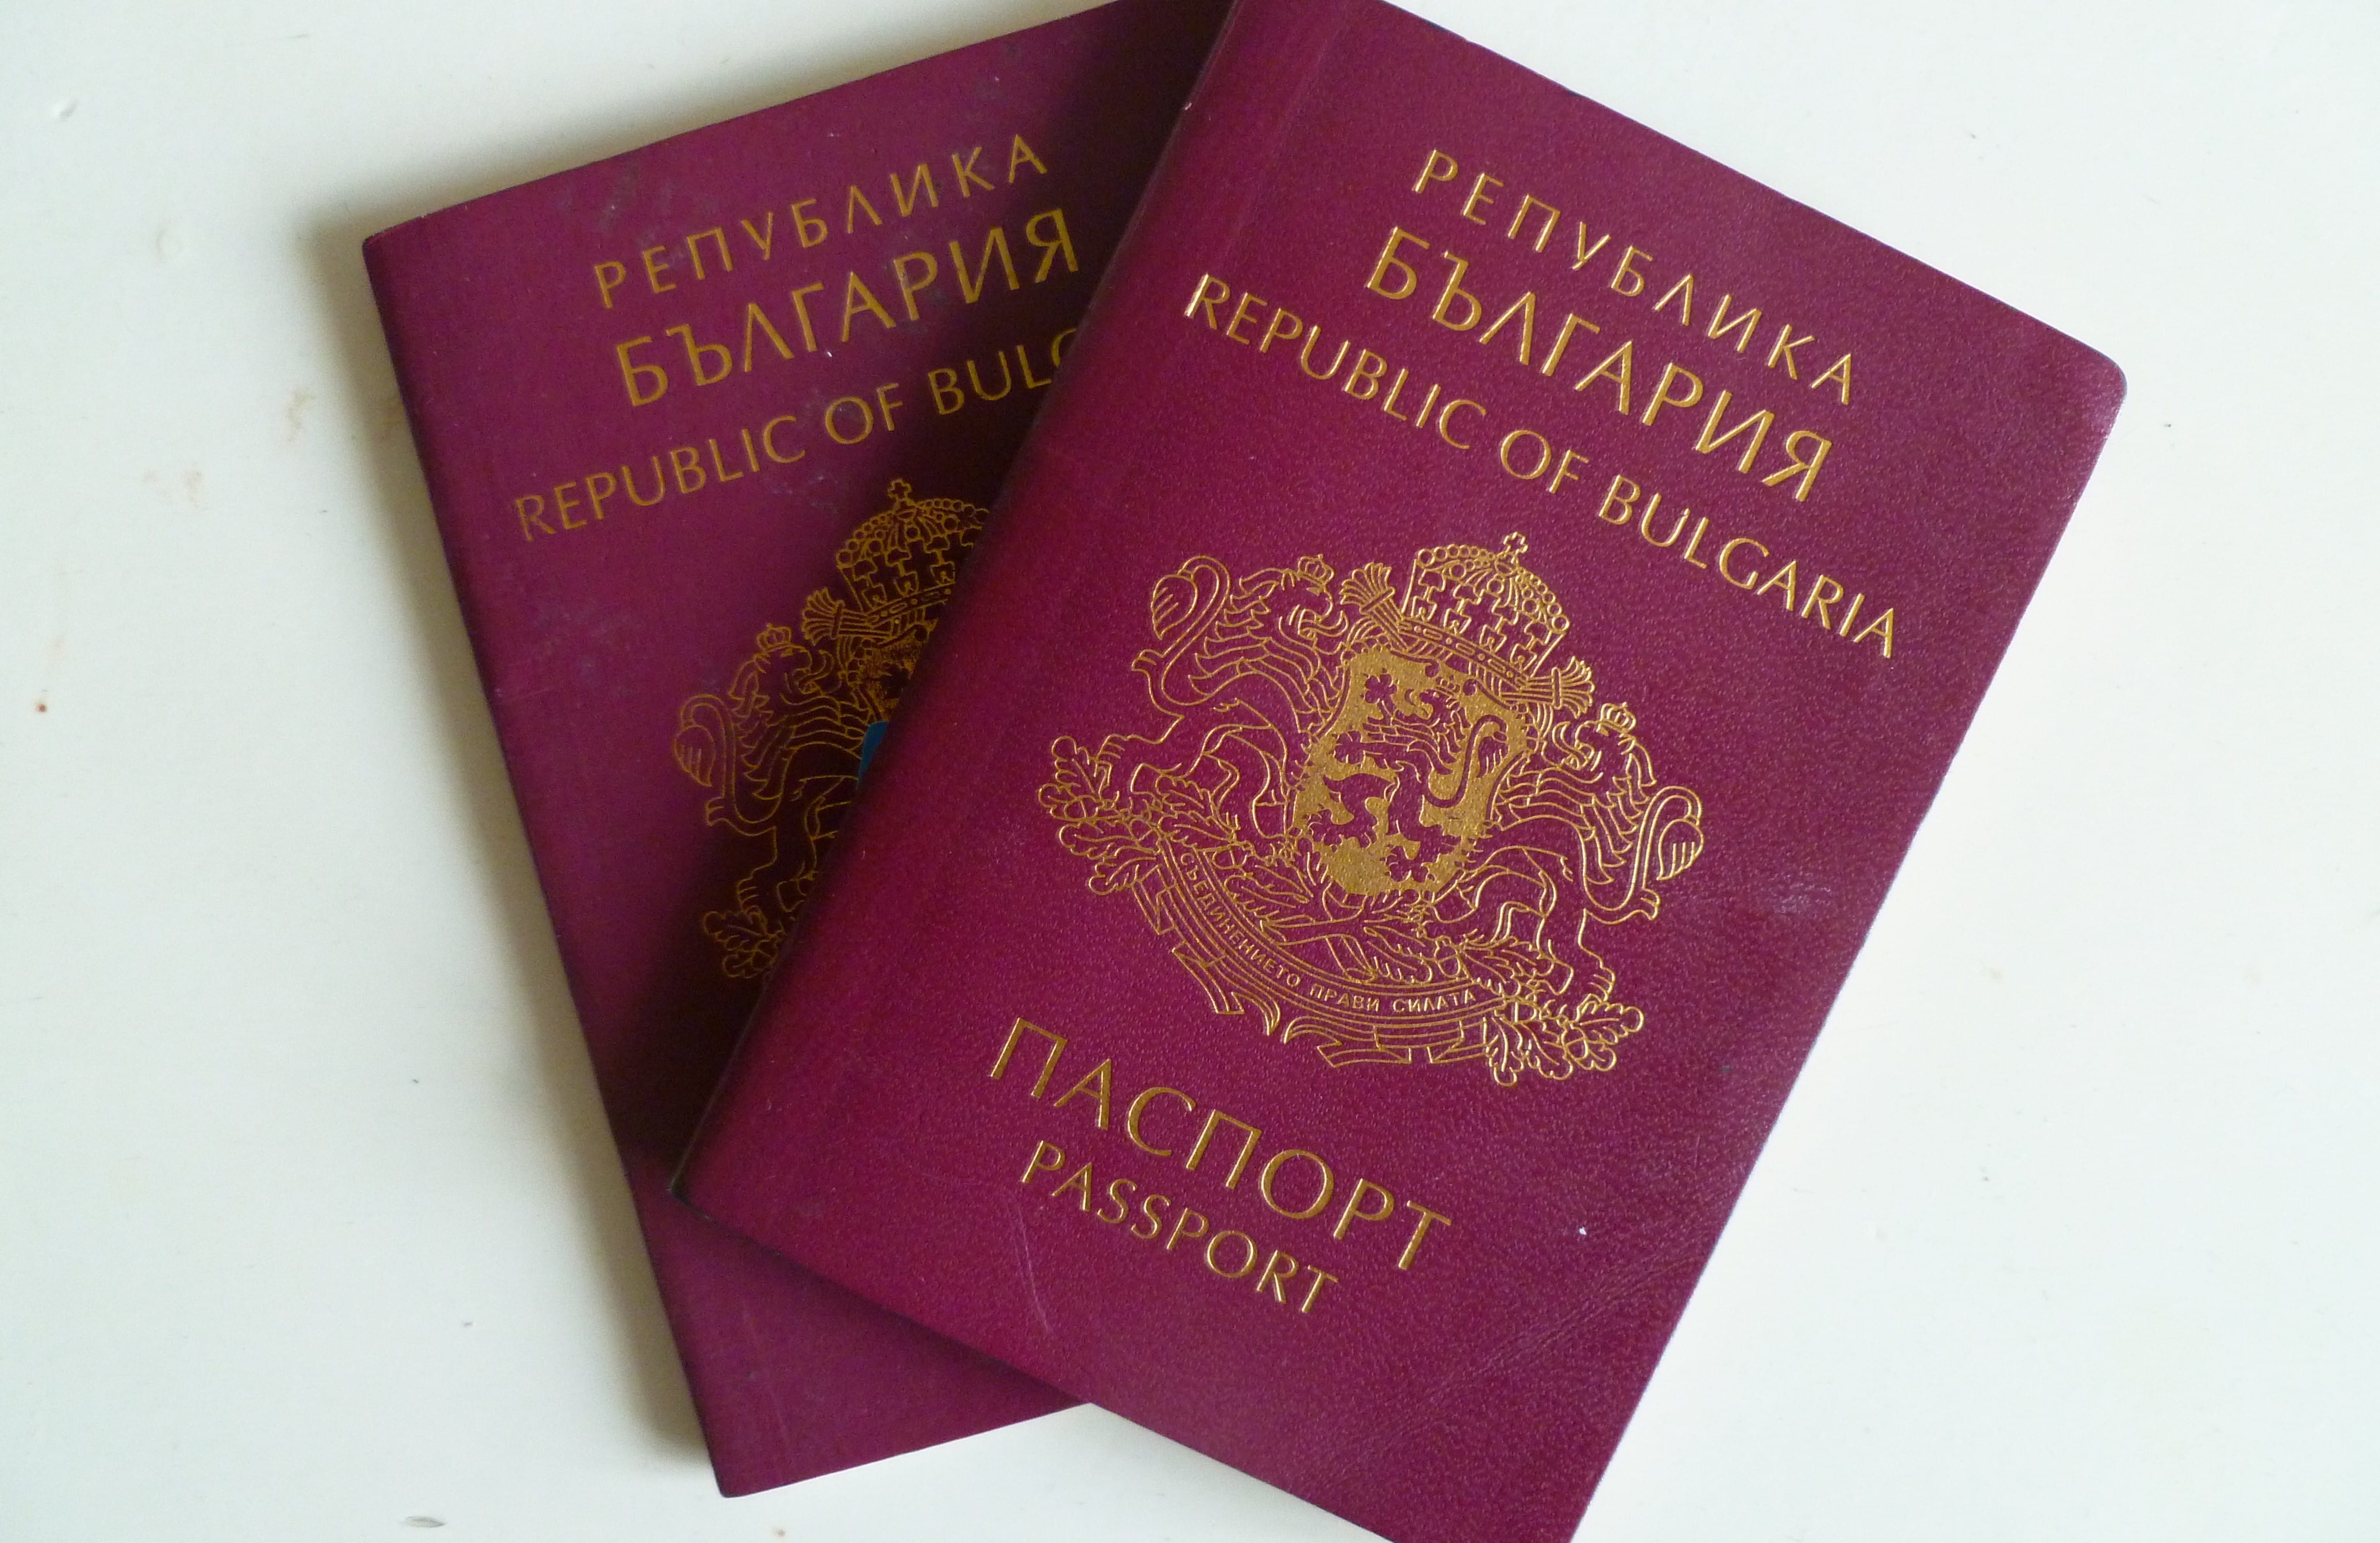 Bulgarian-passport-passports-photo-Clive-Leviev-Sawyer-e1349387453169